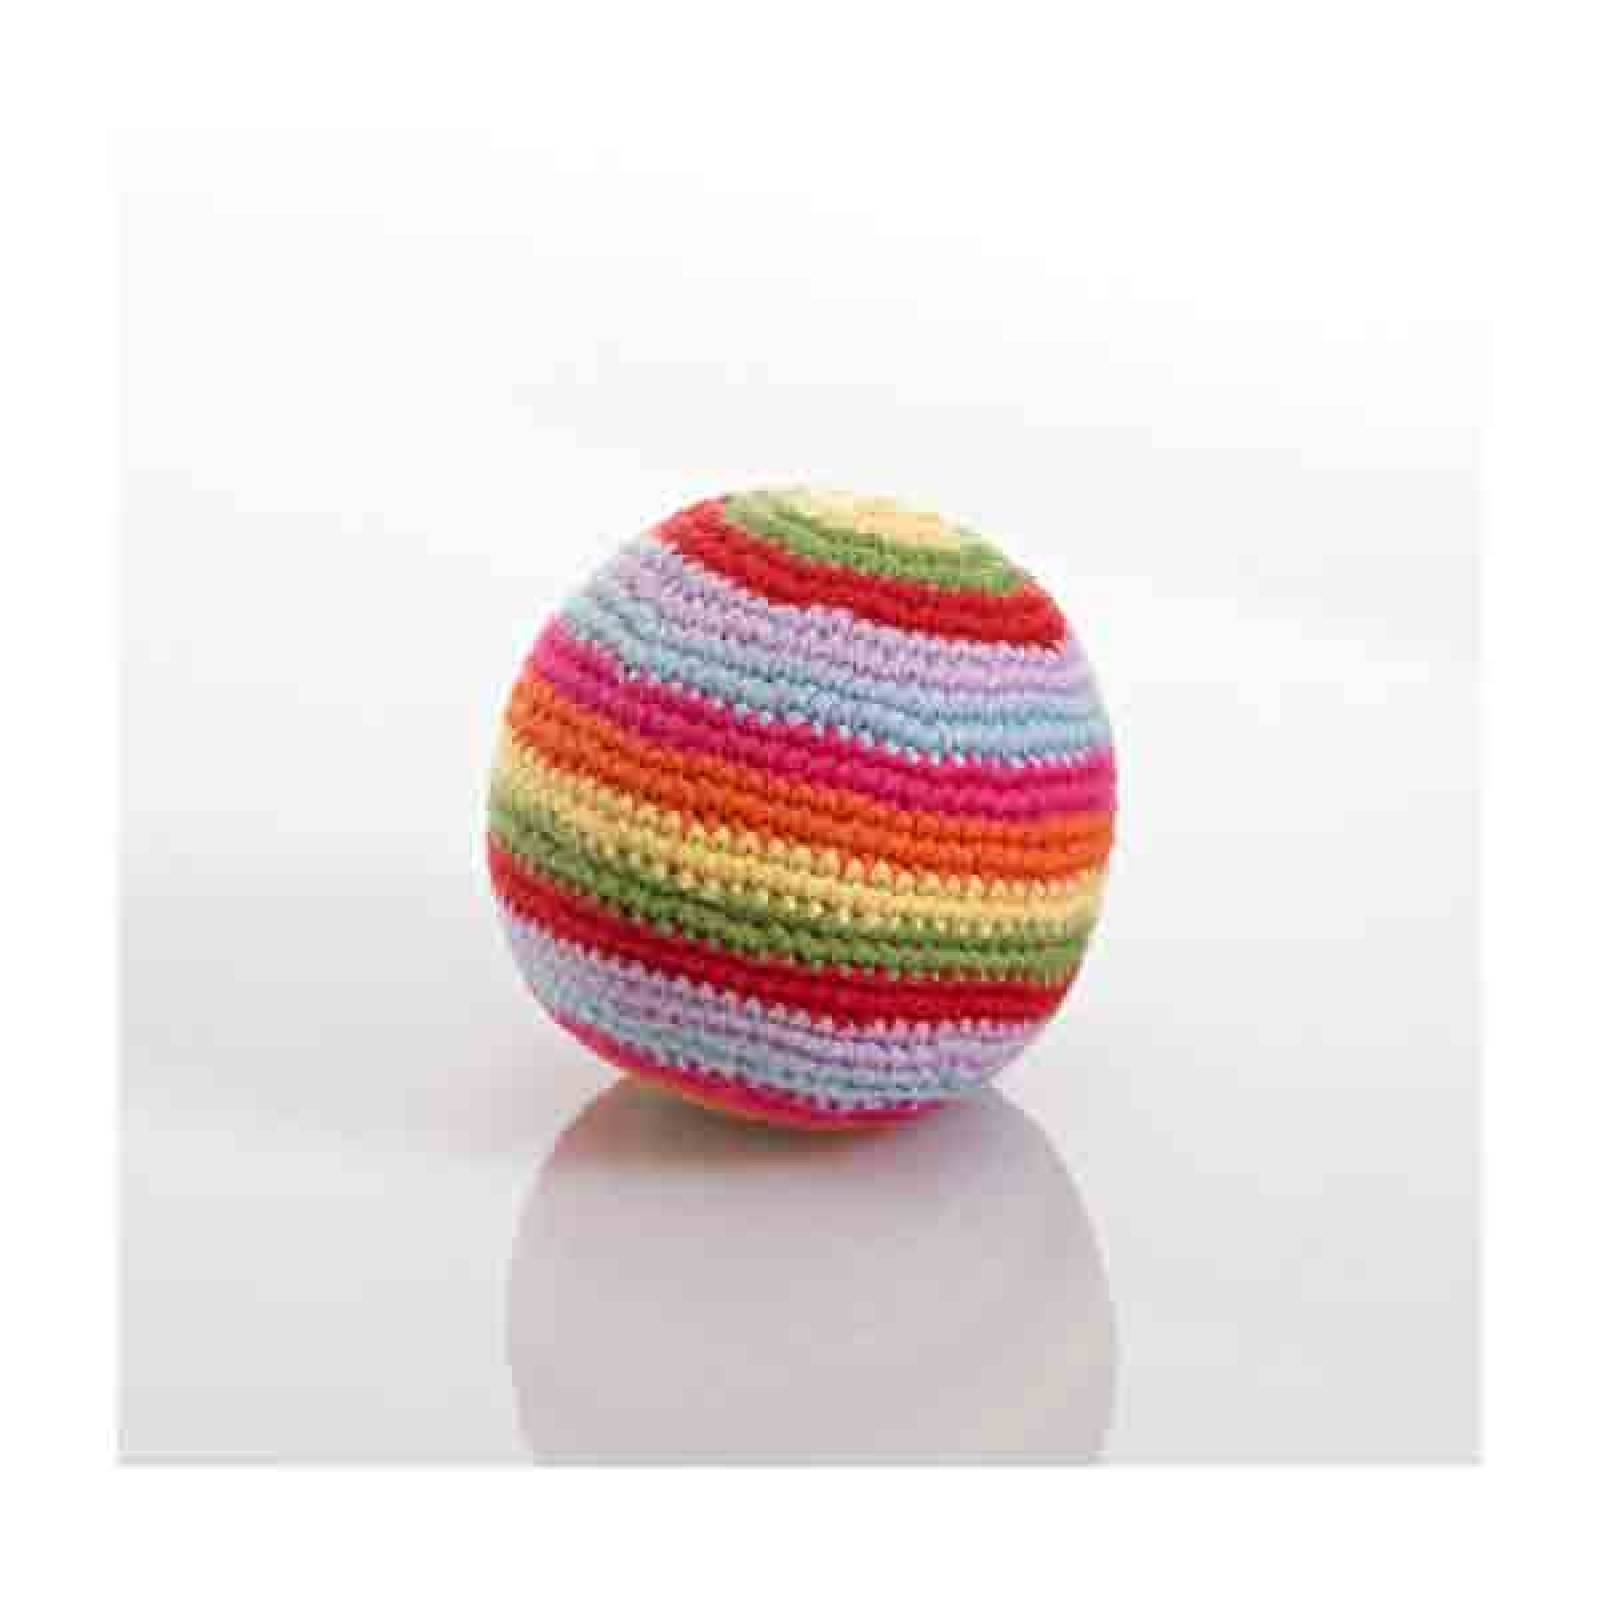 Striped Crochet Knit Ball Rattle Handmade 0yr+ thumbnails